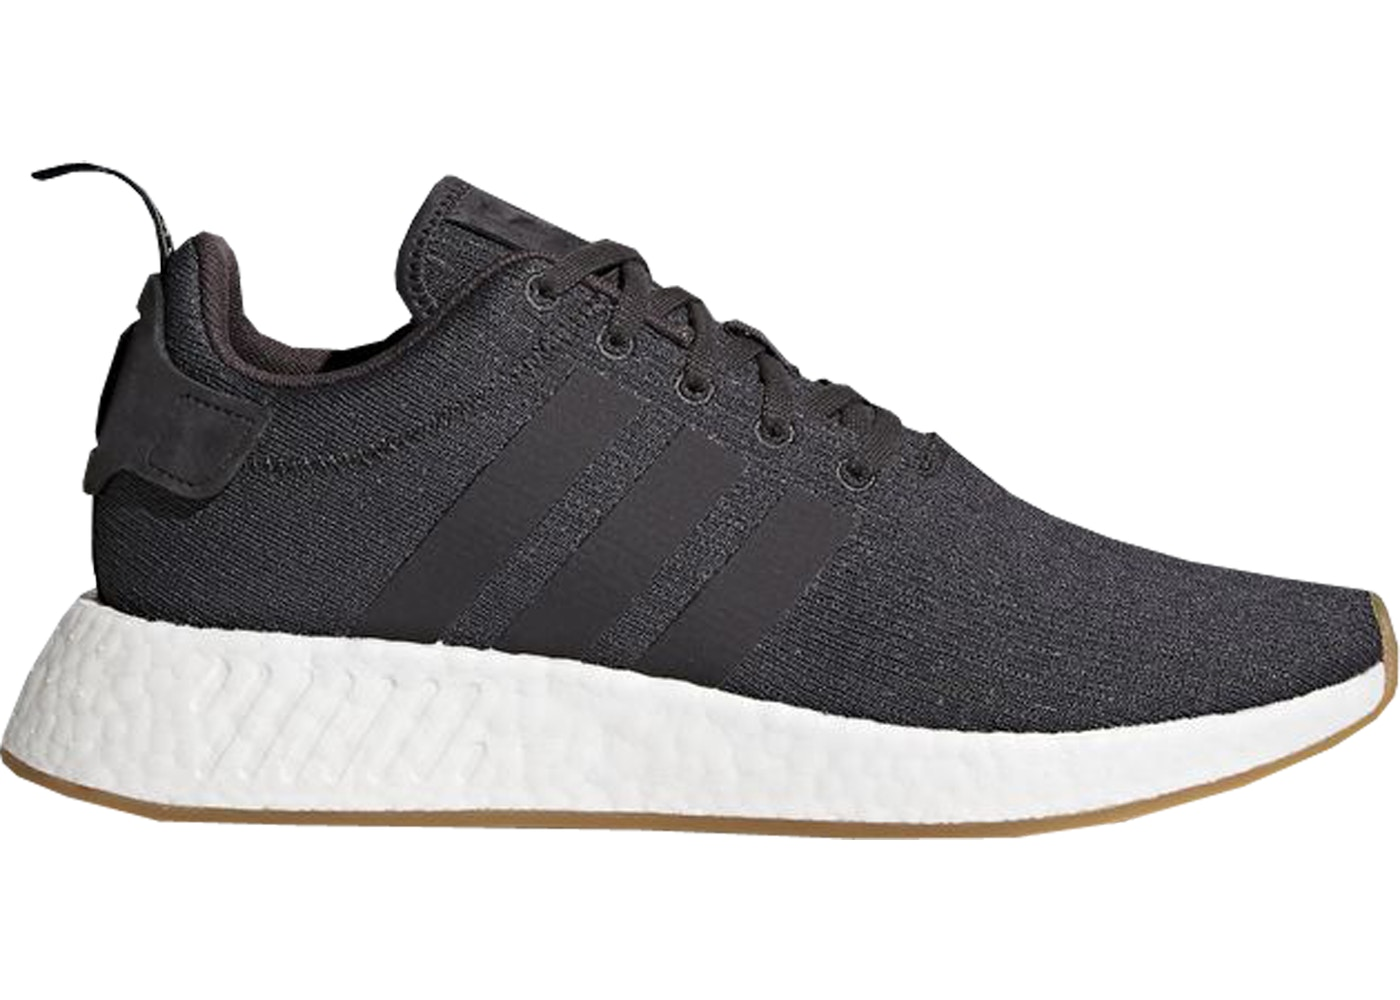 23969f647b90c adidas NMD R2 Shoes - Release Date